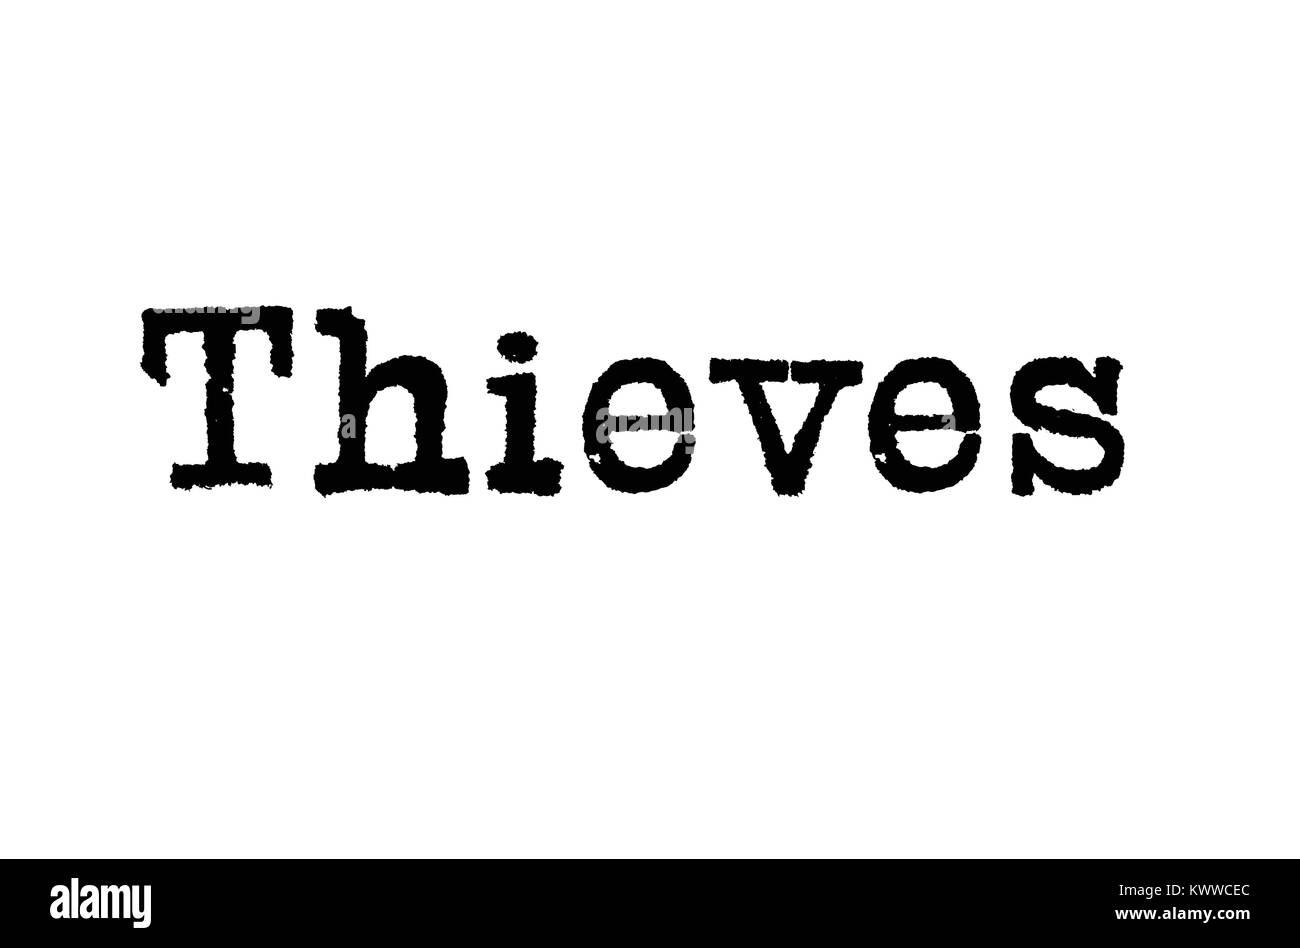 The word 'Thieves' from a typewriter on a white background - Stock Image